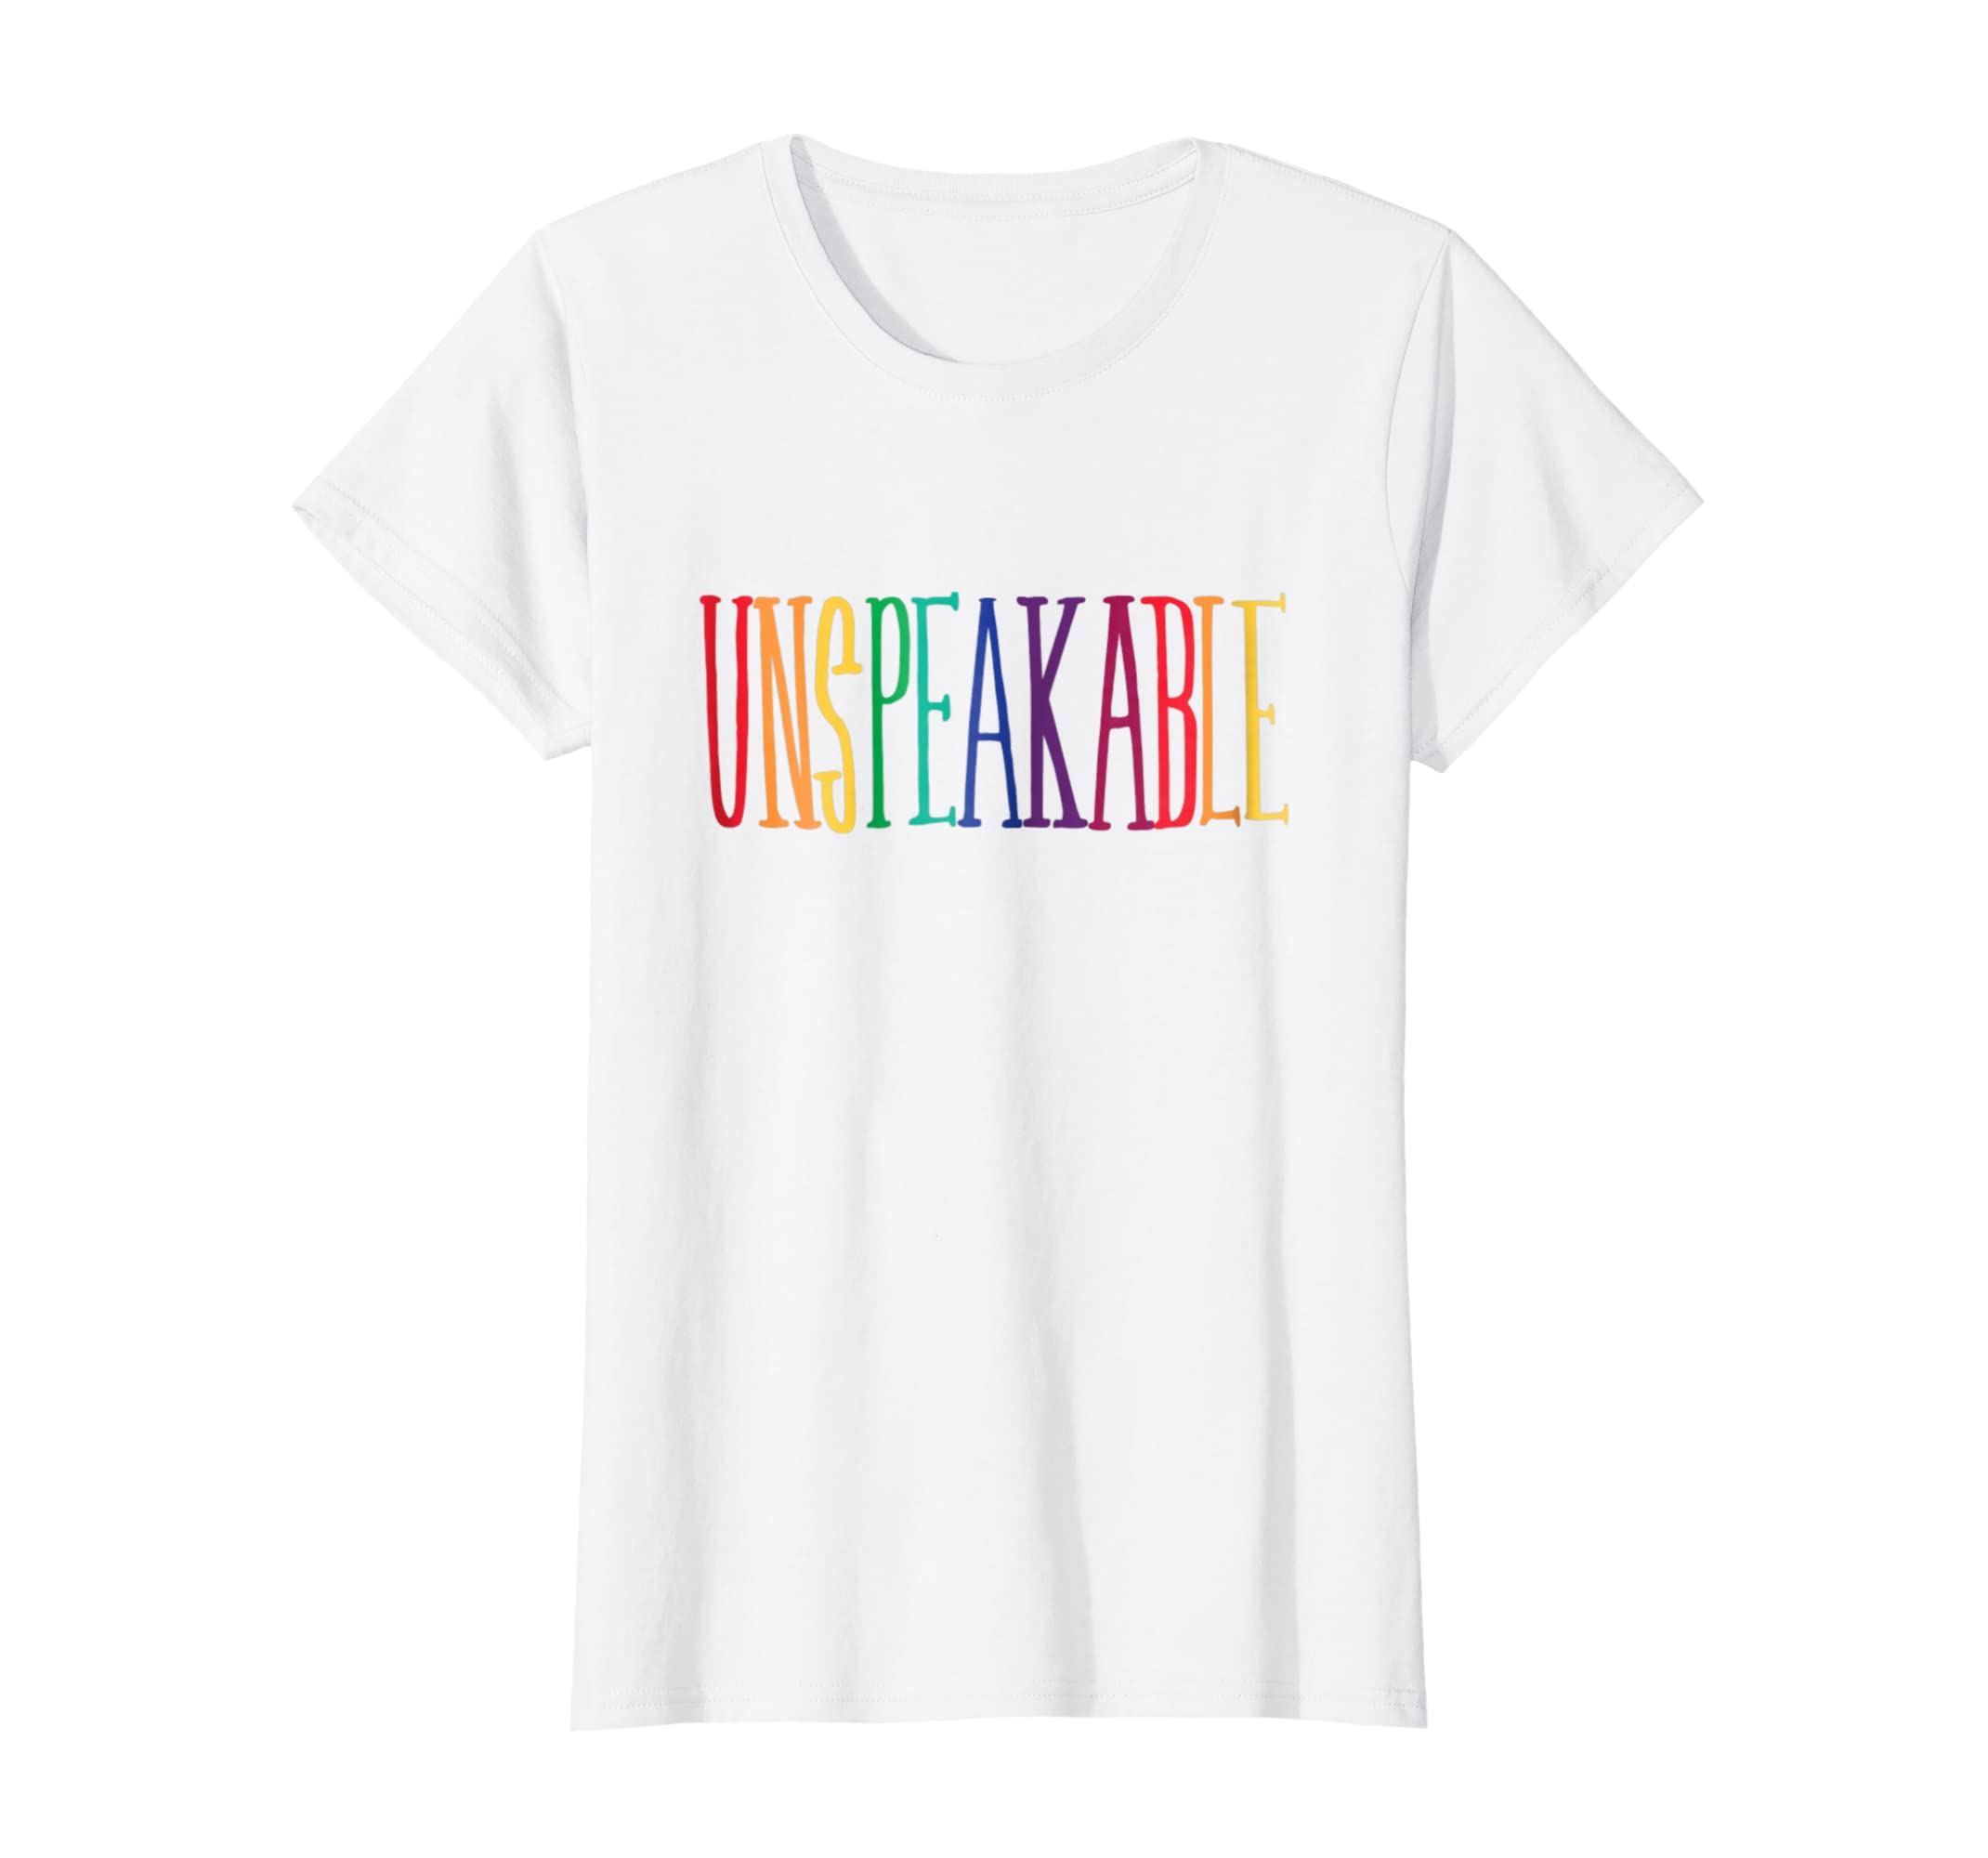 UNSPEAKABLE T SHIRT KIDS FANS GIFT MERCH BOYS TEE-Teechatpro